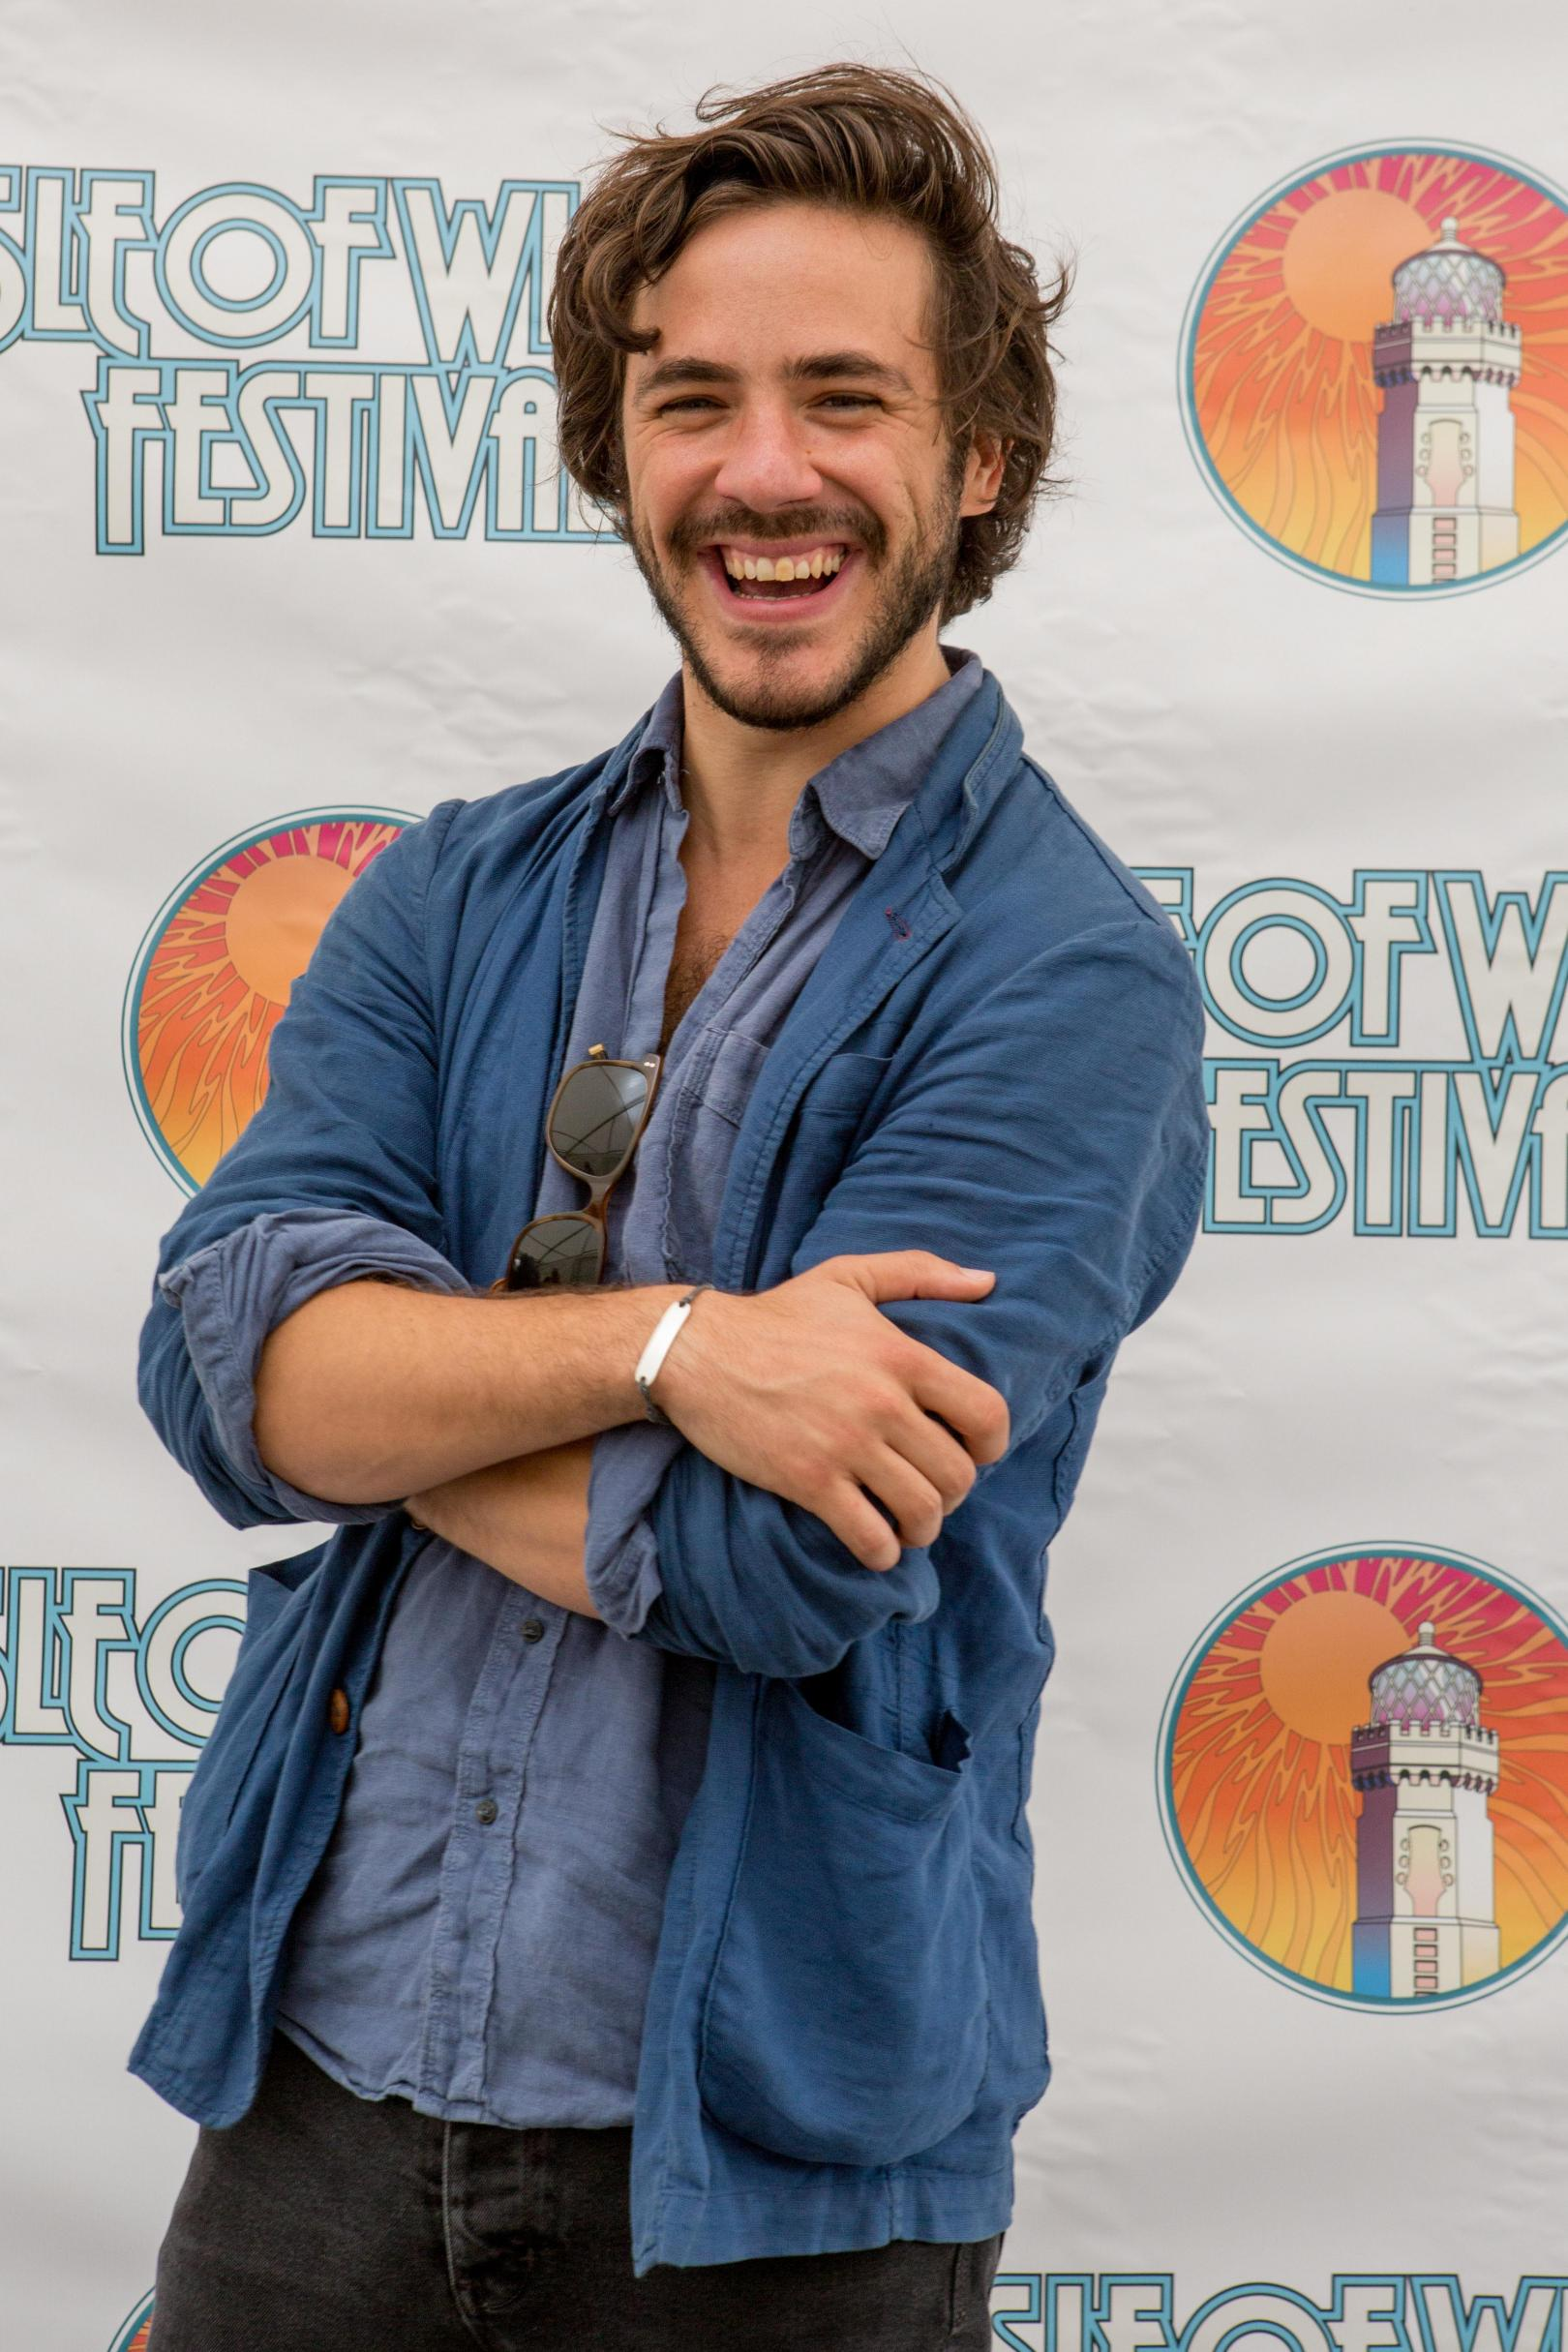 Jack Savoretti at Isle of Wight Festival